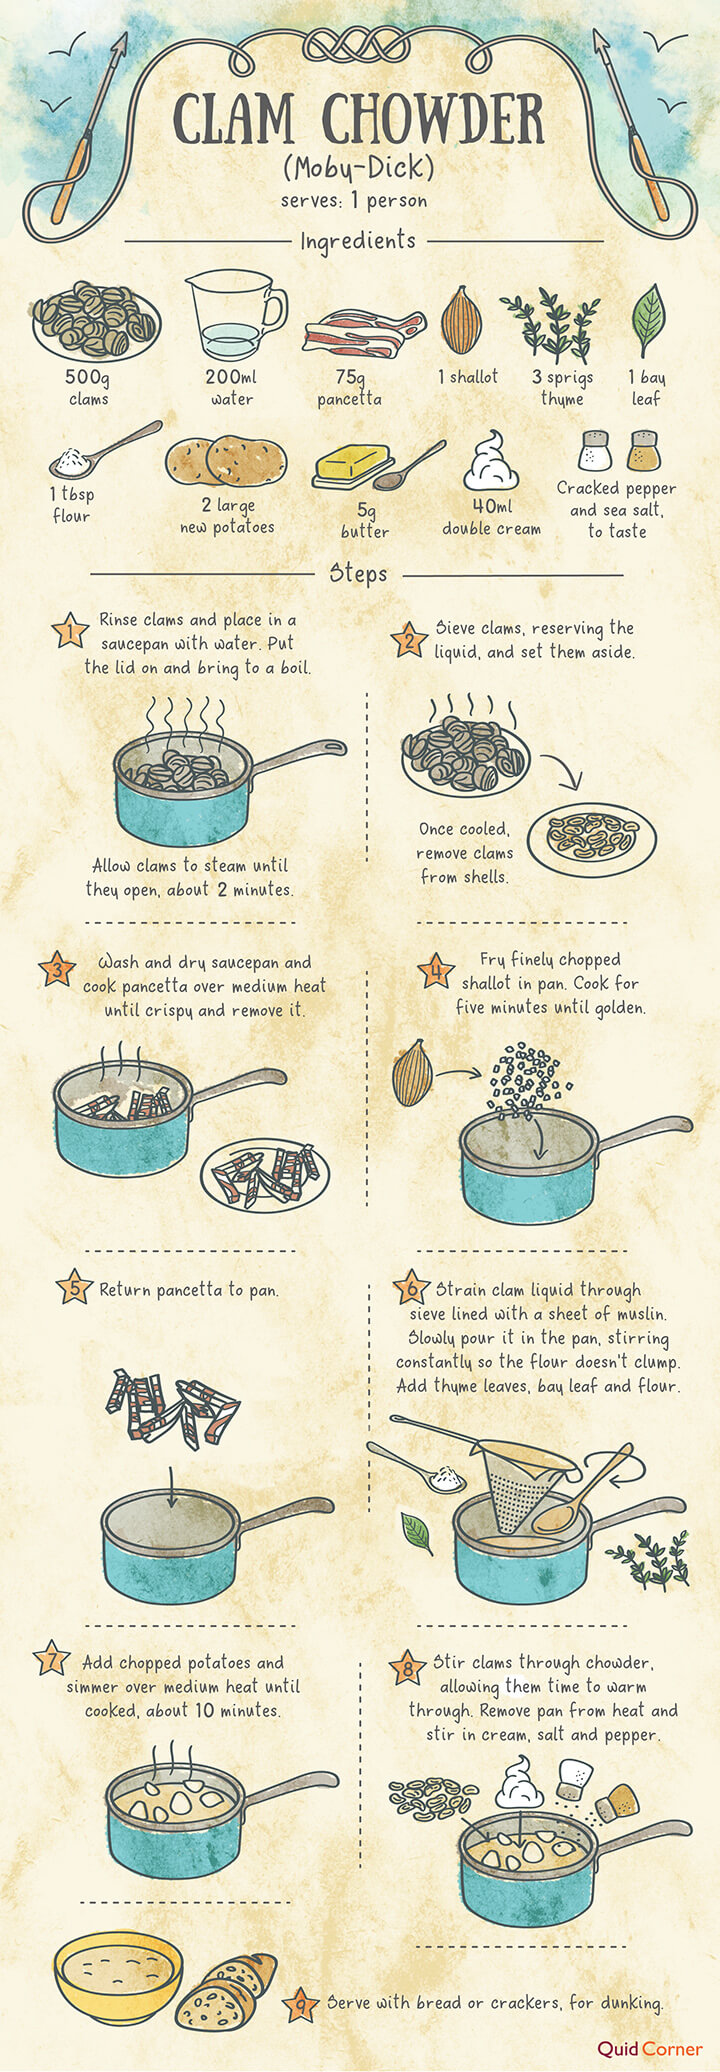 Moby Dick Clam Chowder recipe